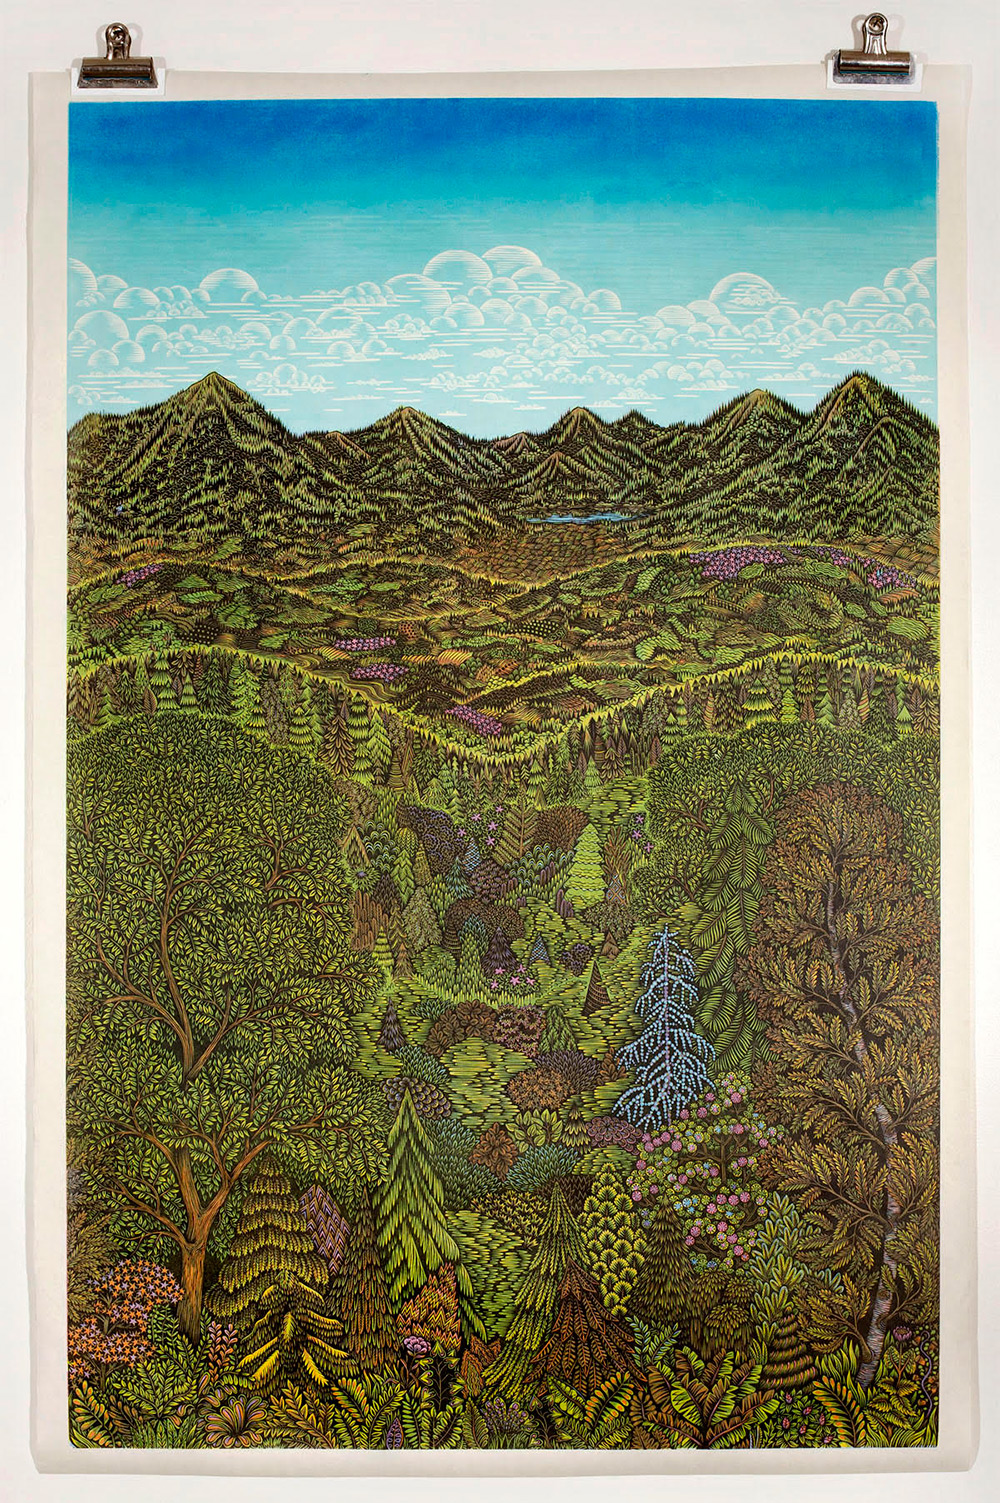 Tugboat Printshop's Lush 'Overlook' Woodcut Print Rolls off the Press After 3 Years of Carving and Preparation This Is Colossal